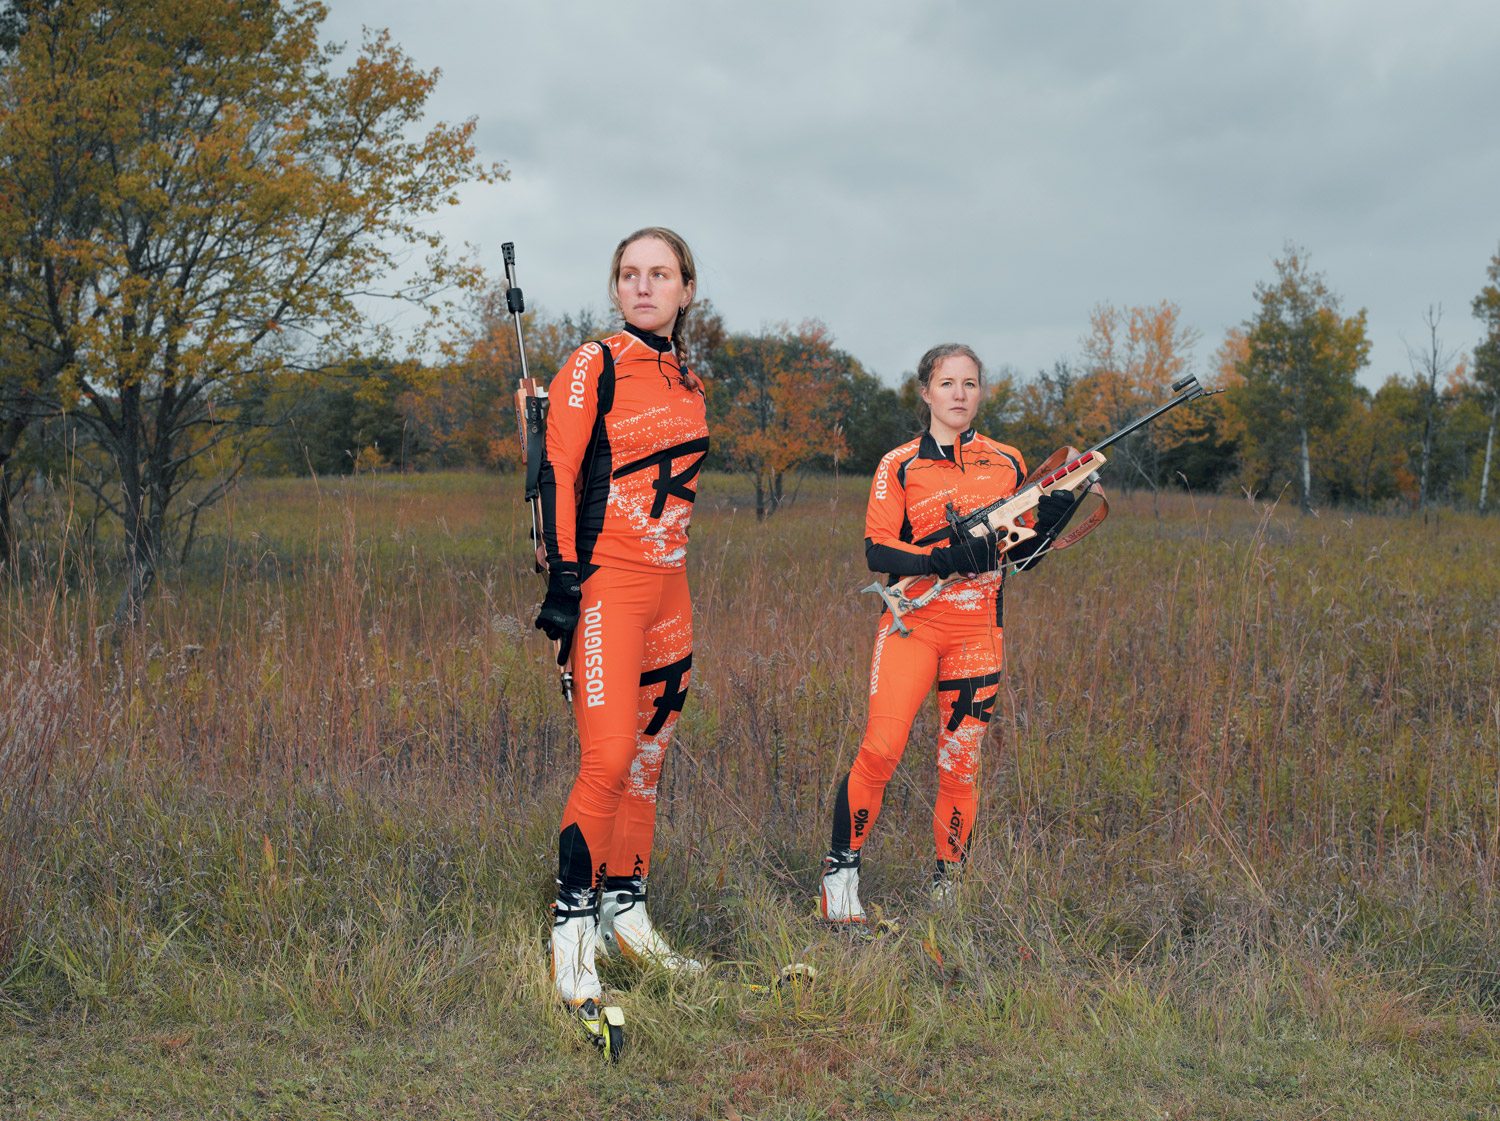 Caitlin and Carolyn (from left), Minneapolis, MN, Anschutz Fortner rifle with Czech custom stock